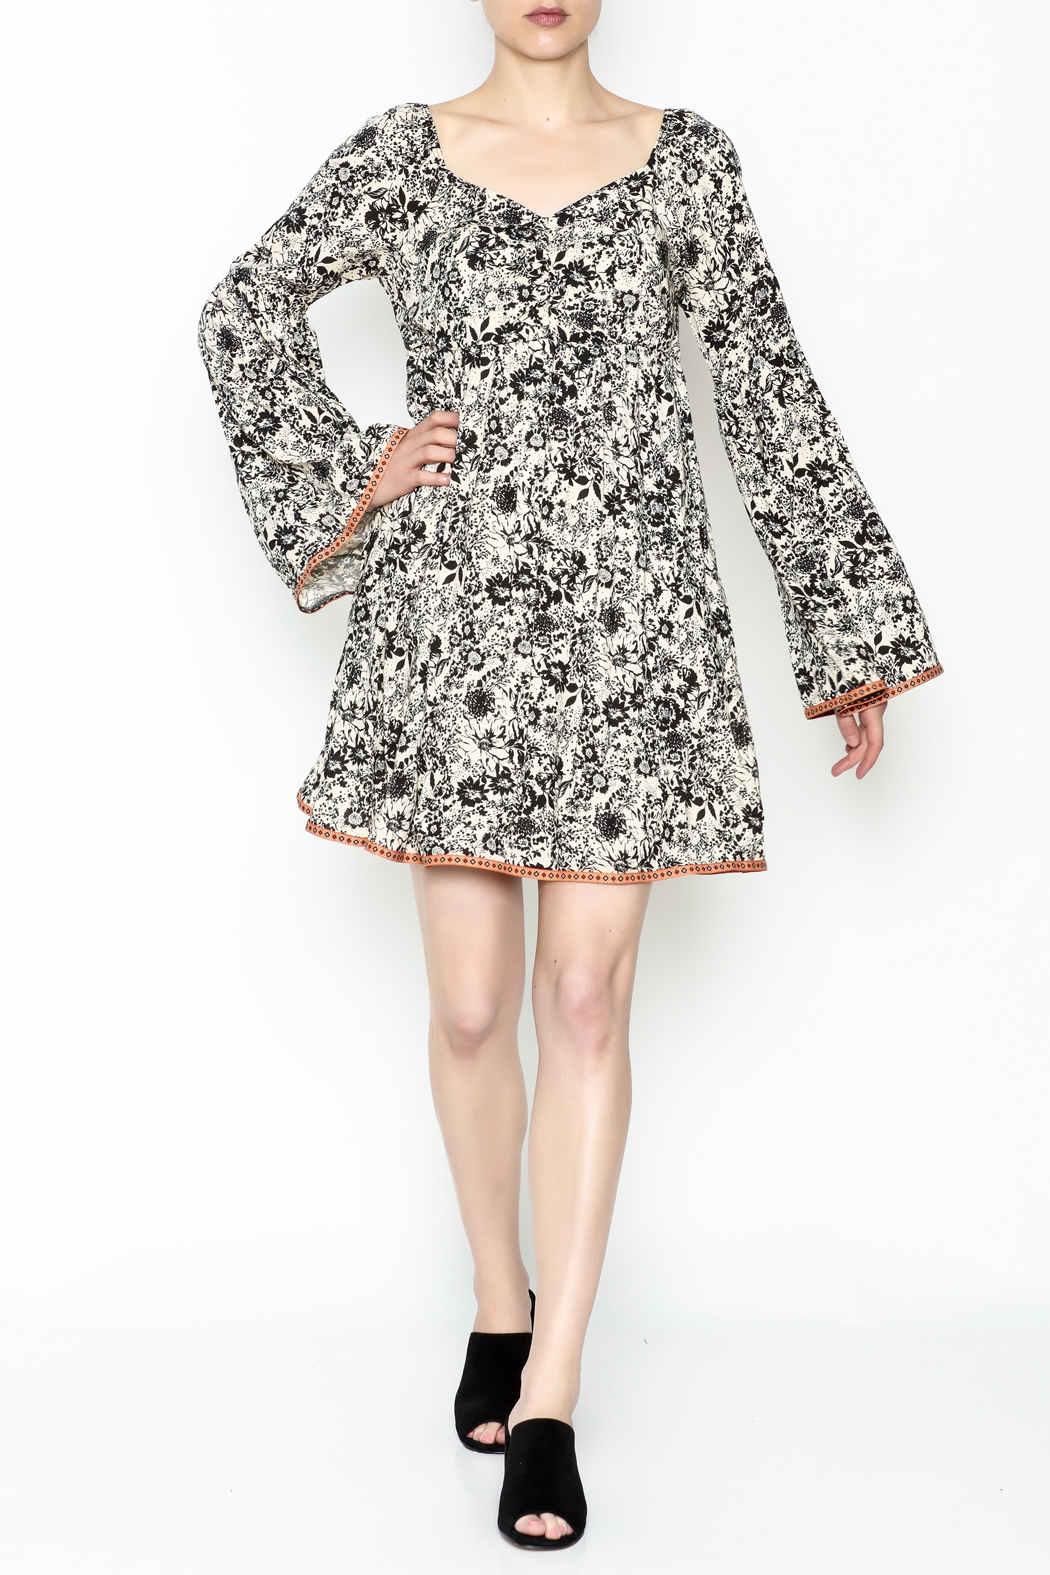 Ces Femme Floral Flare Dress - Front Cropped Image